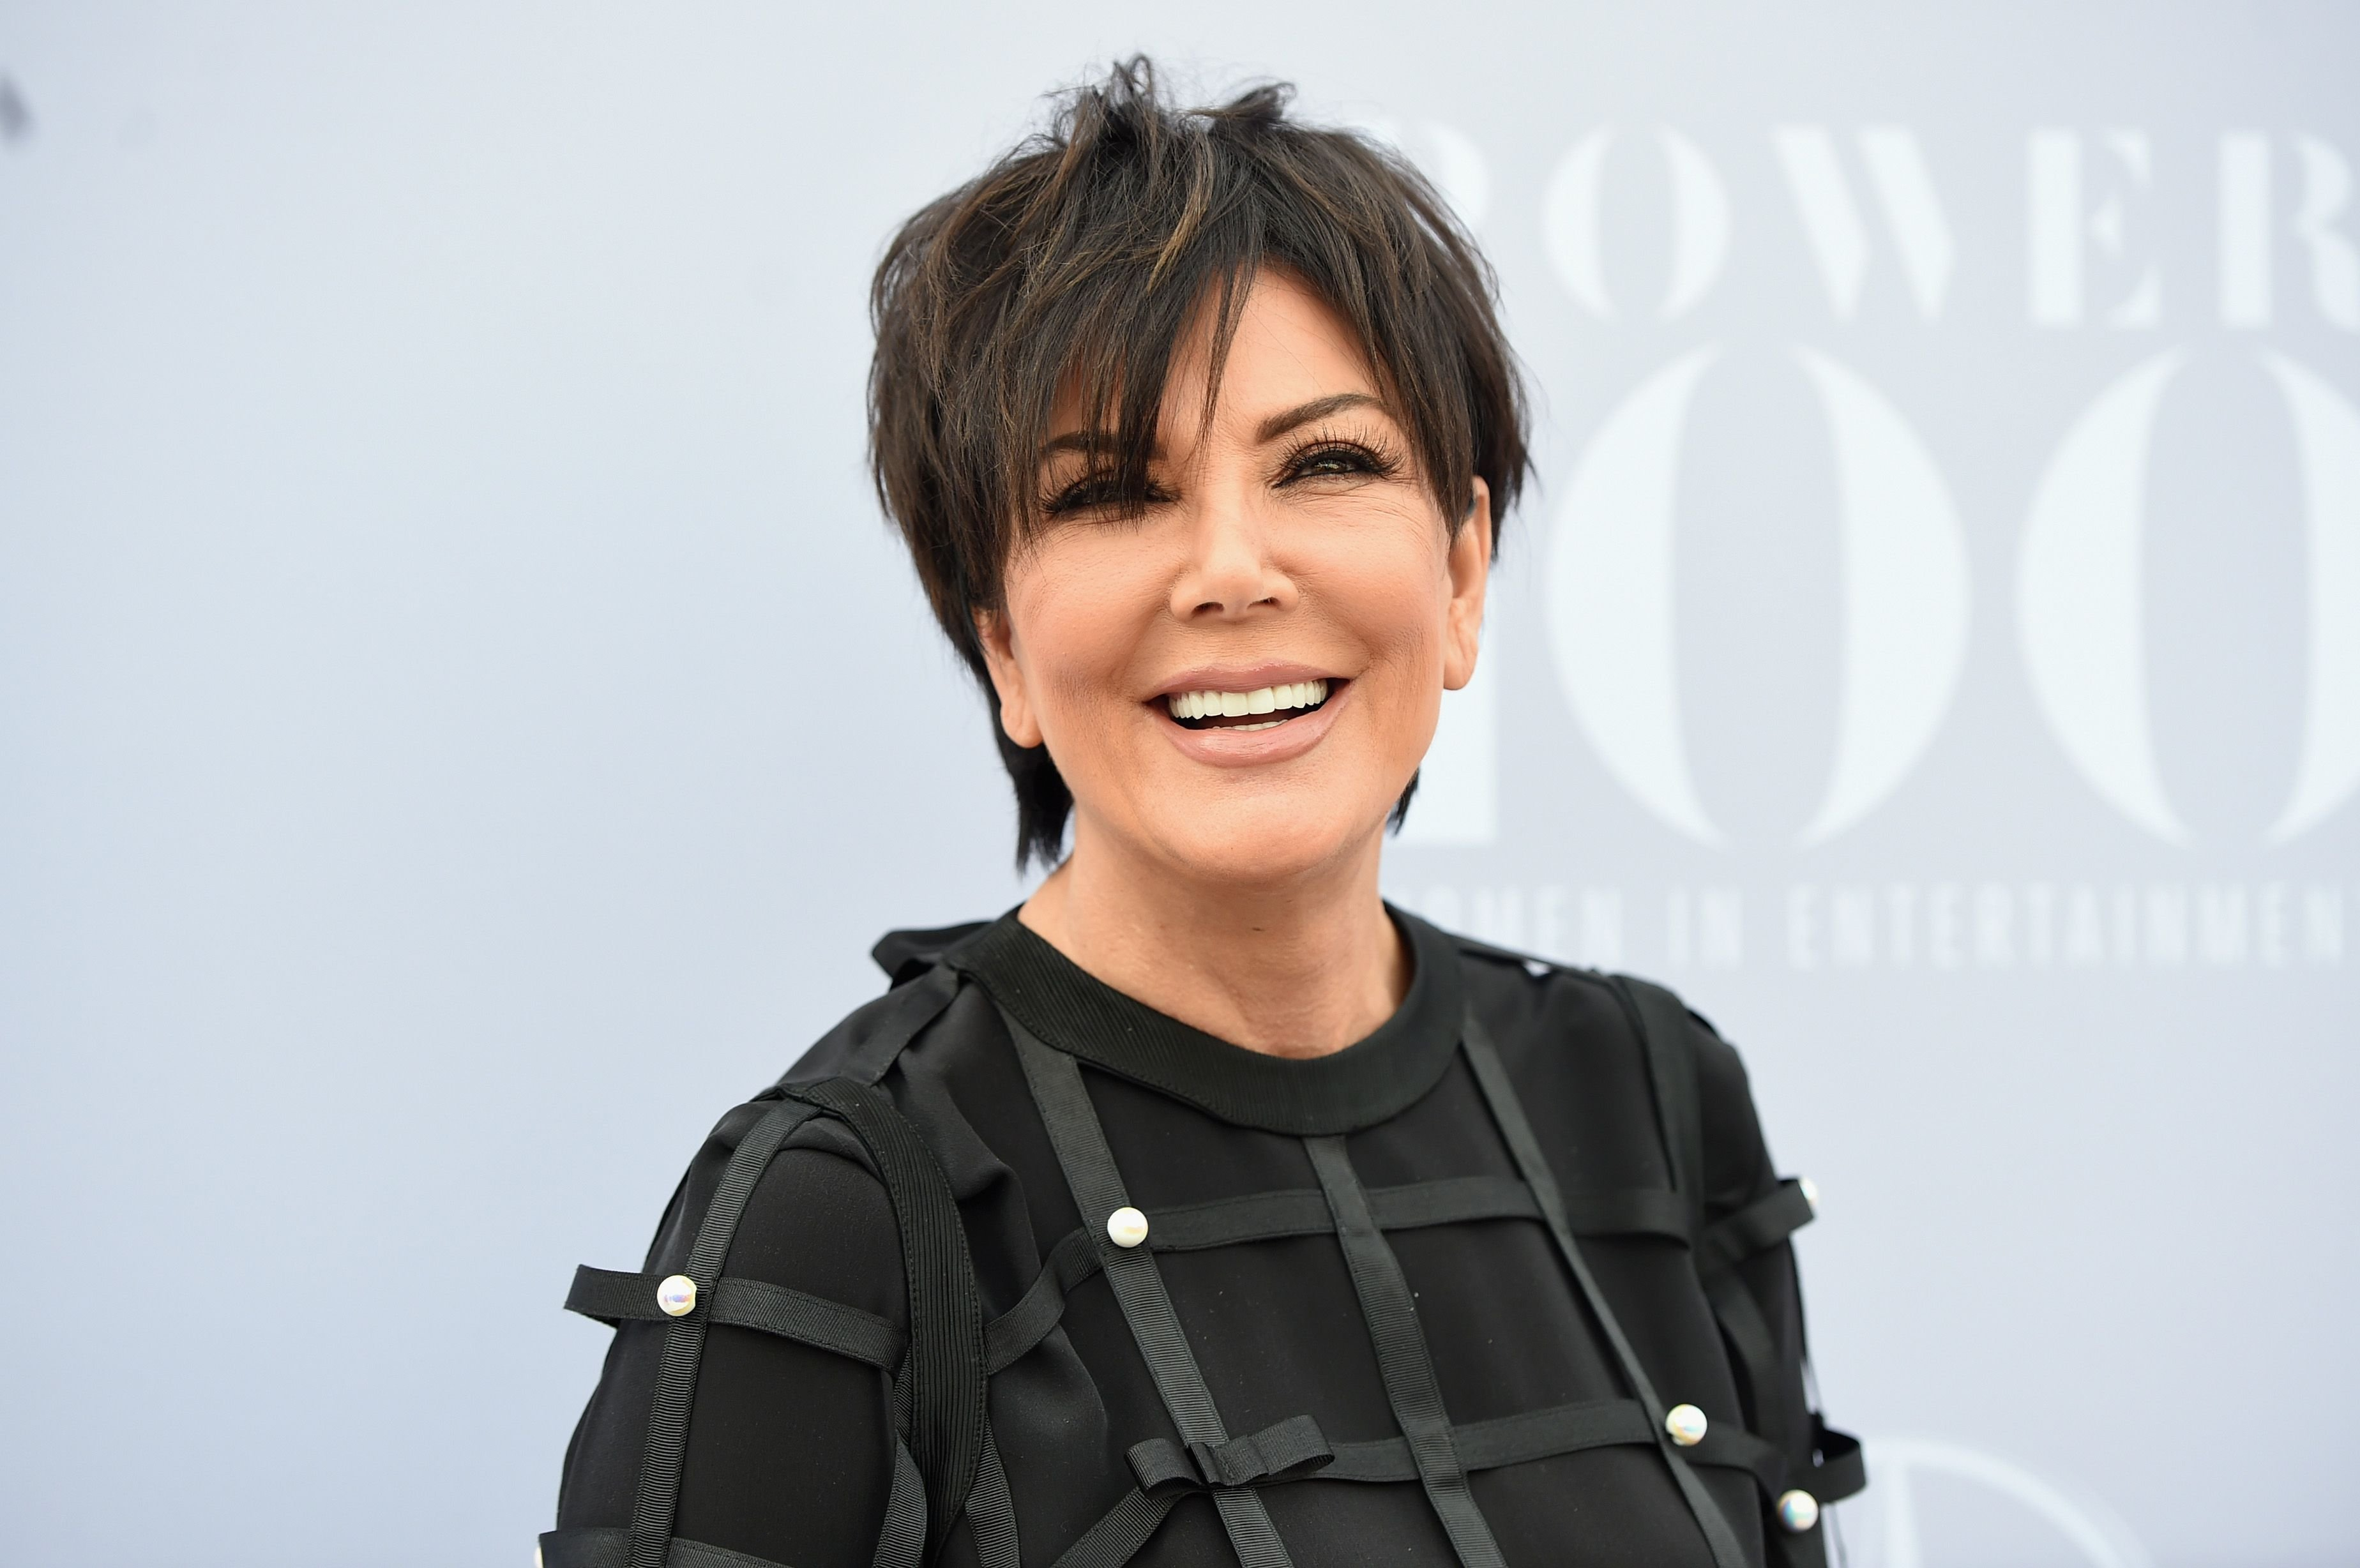 Kris Jenner at the 24th annual Women in Entertainment Breakfast at Milk Studios on December 9, 2015 in Los Angeles, California.  Photo: Getty Images